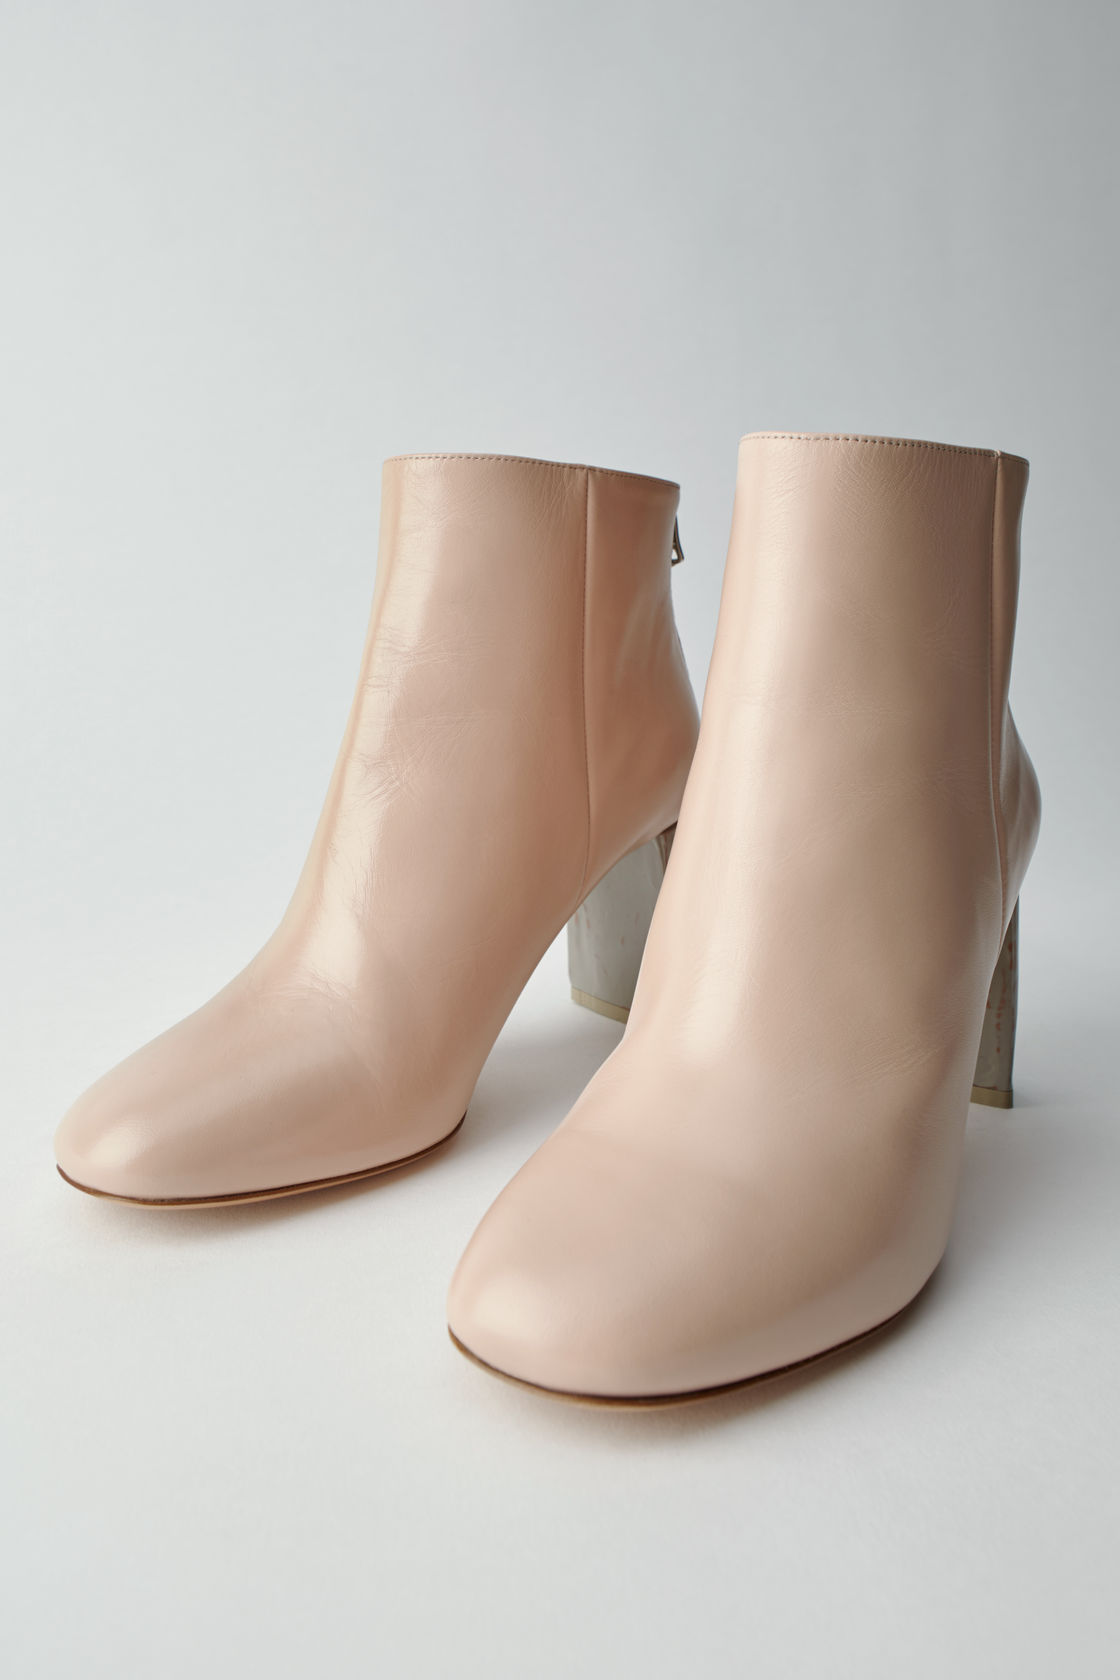 Acne Studios 2 - Claudine Ankle Boot - Pink